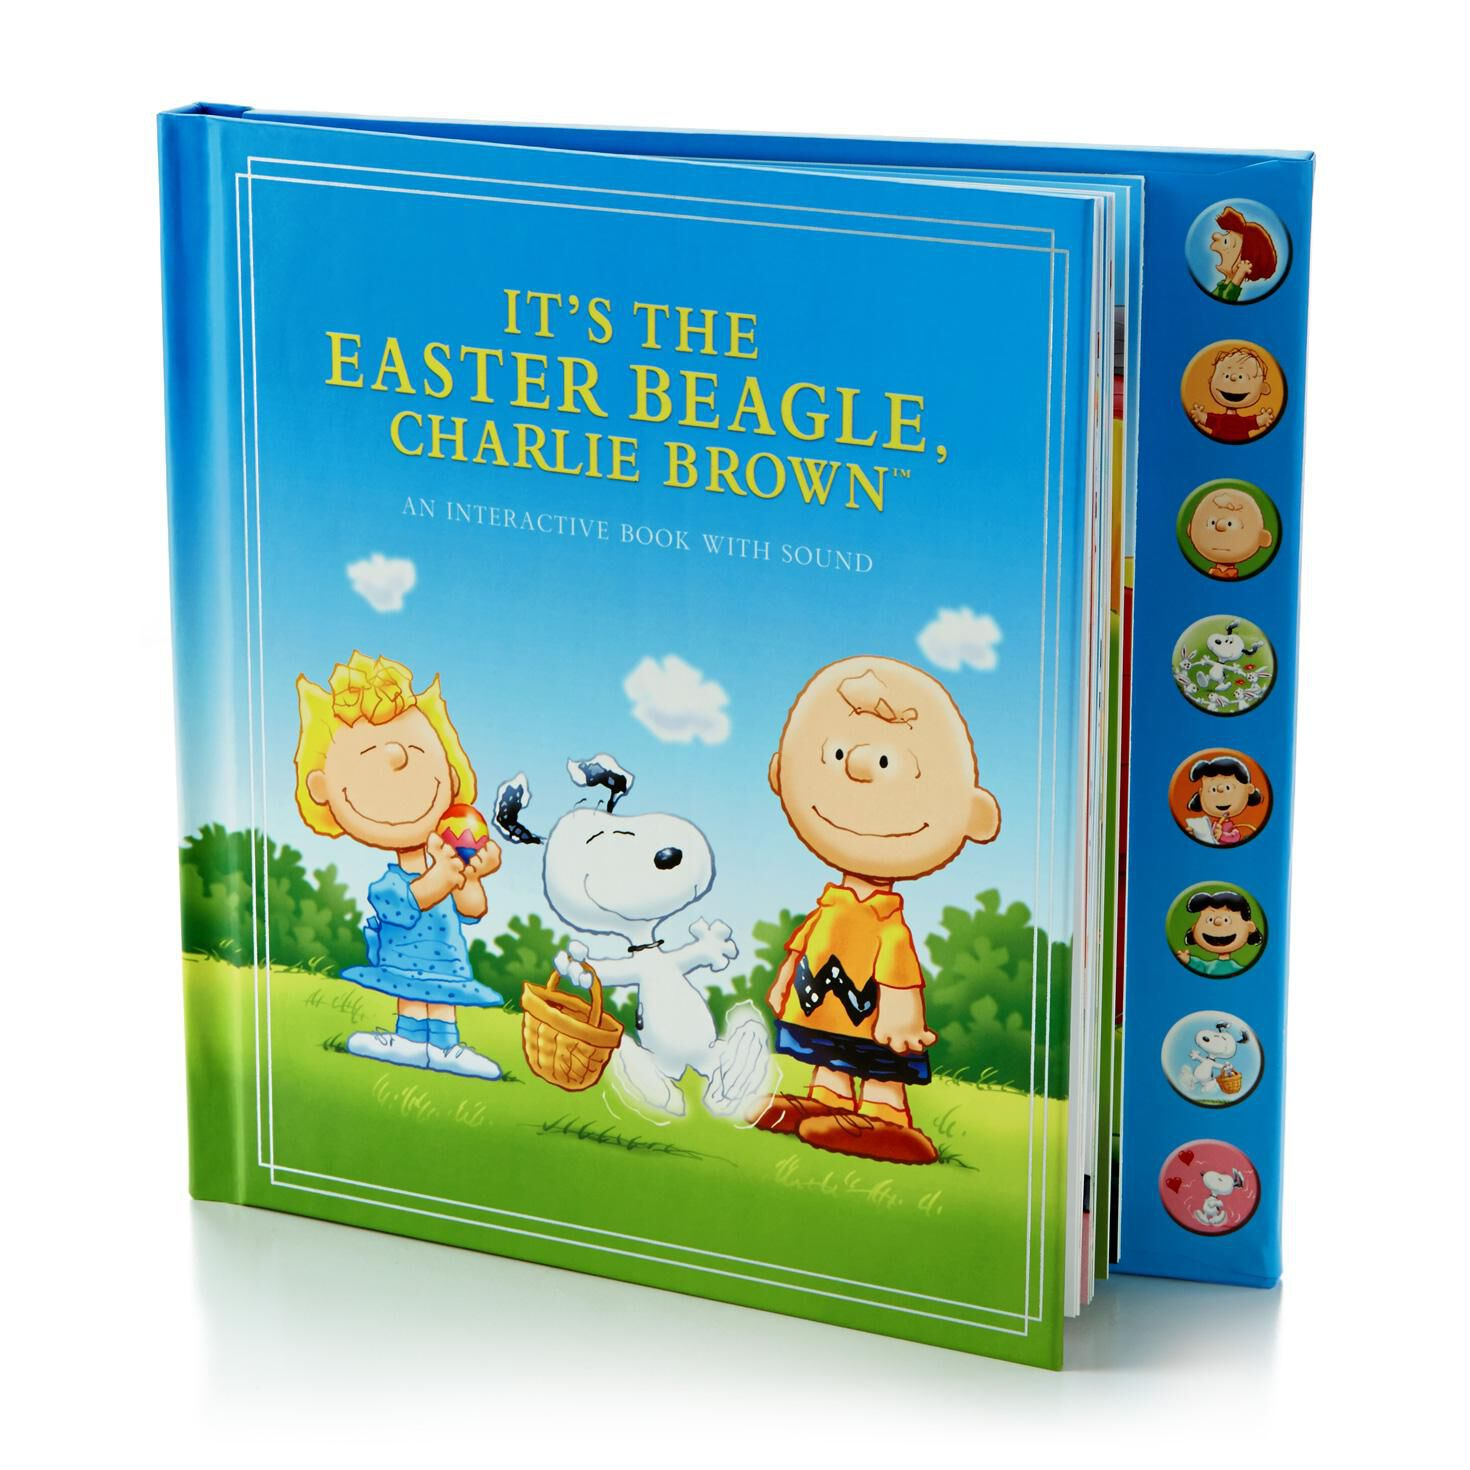 It's the Easter Beagle, Charlie Brown Interactive Book with Sound